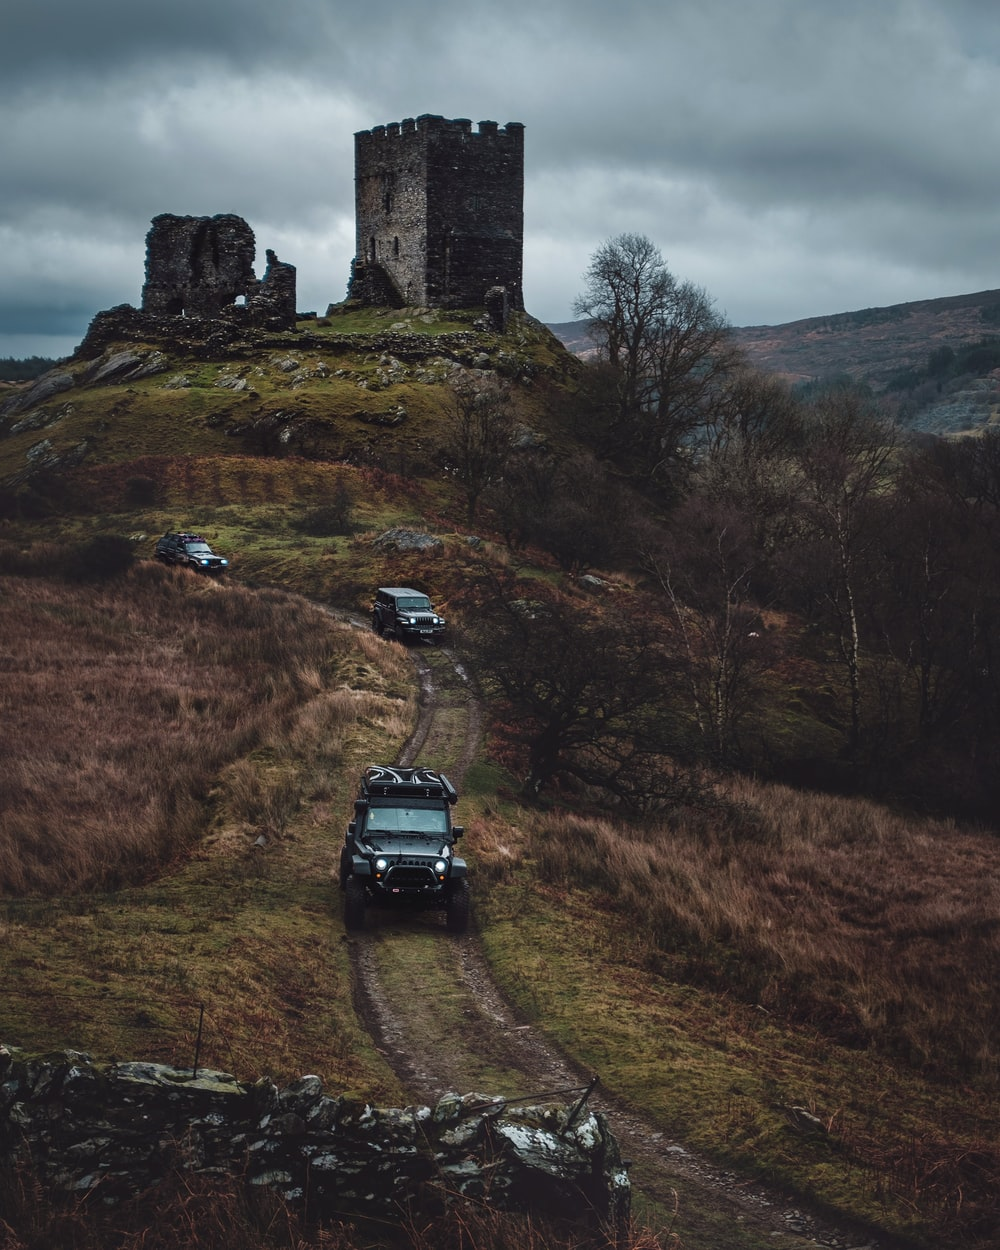 vehicles on road viewing brown ruin castle under white and gray sky